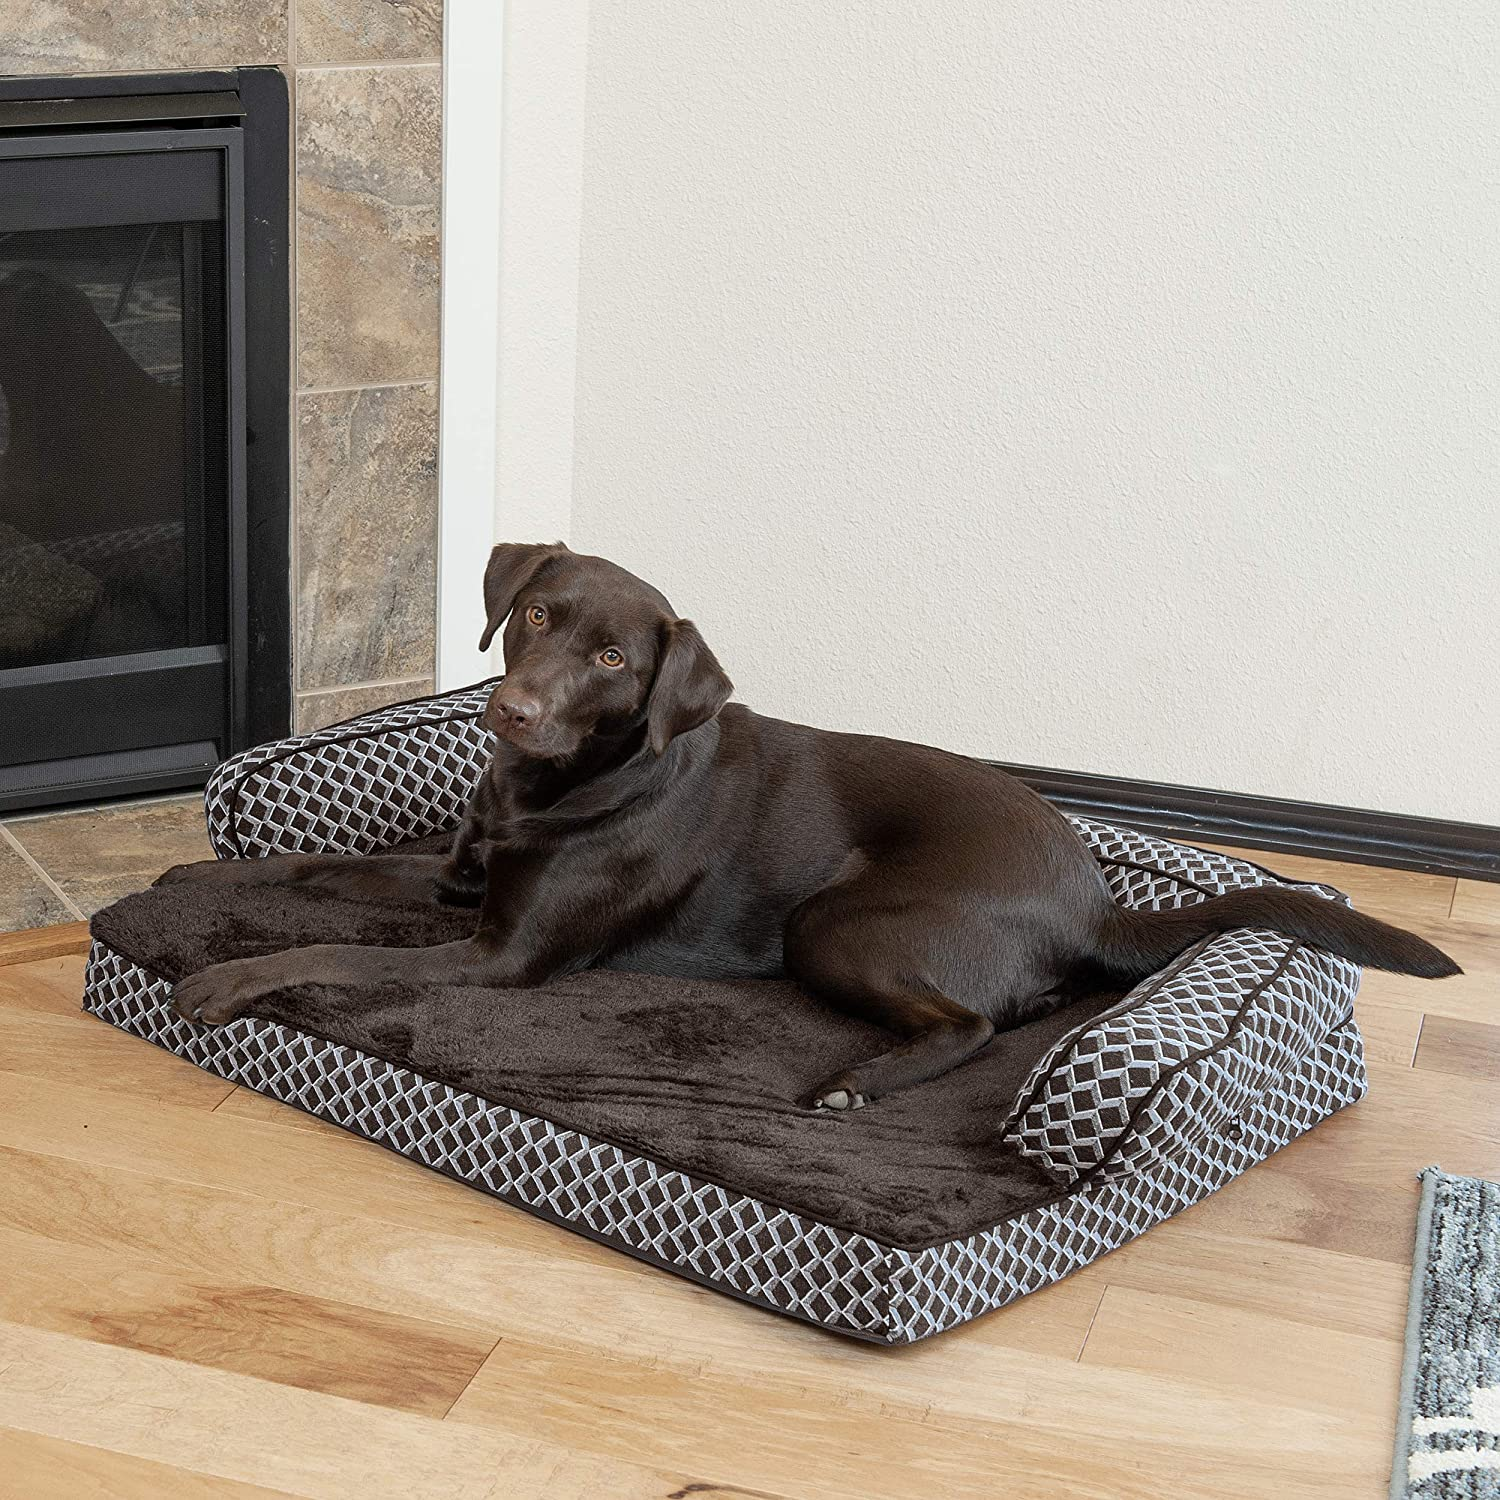 Furhaven Pet Dog Bed | Orthopedic Plush Faux Fur & Décor Comfy Couch Traditional Sofa-Style Living Room Couch Pet Bed w/ Removable Cover for Dogs & ...